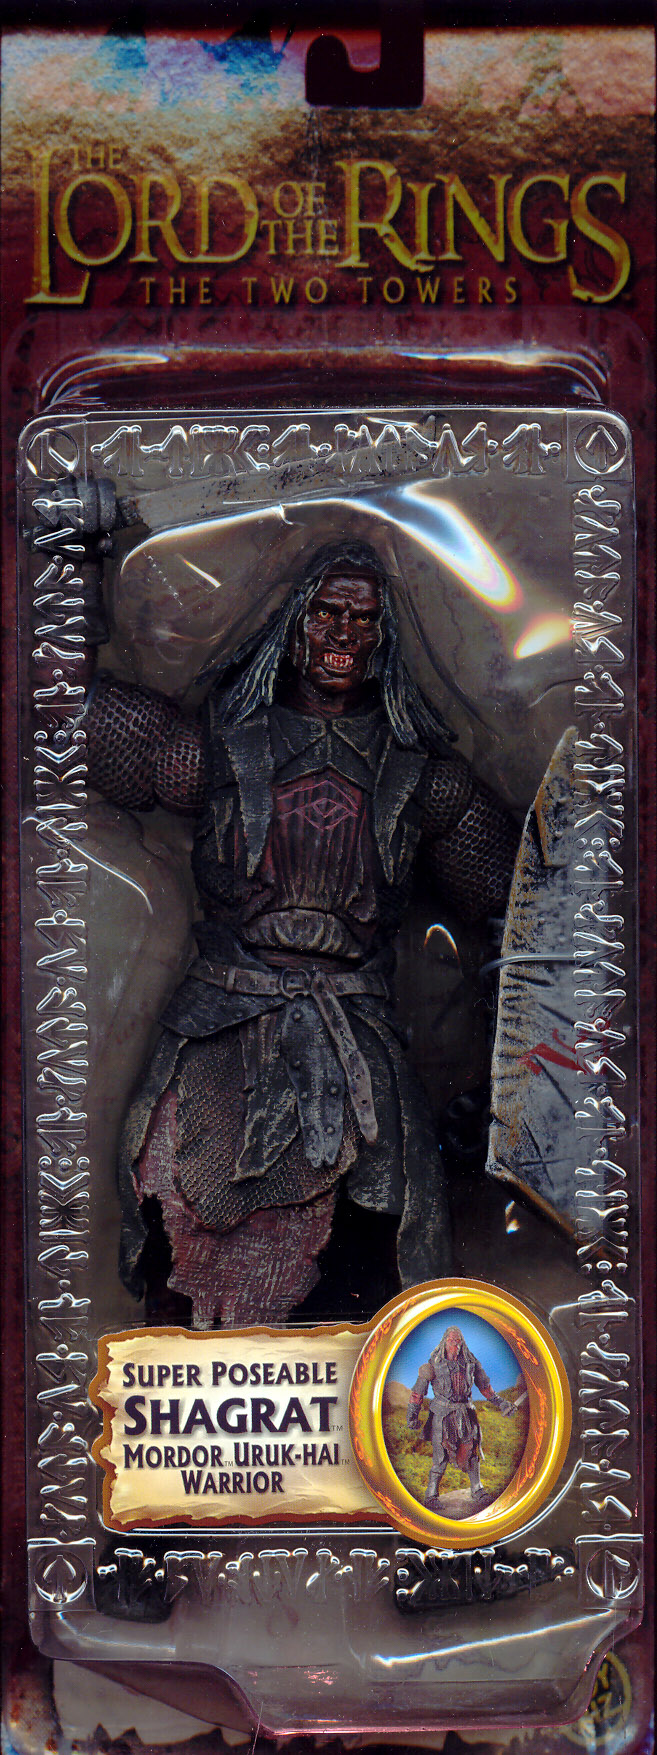 Super Poseable Shagrat Mordor Uruk-hai Warrior (Trilogy)